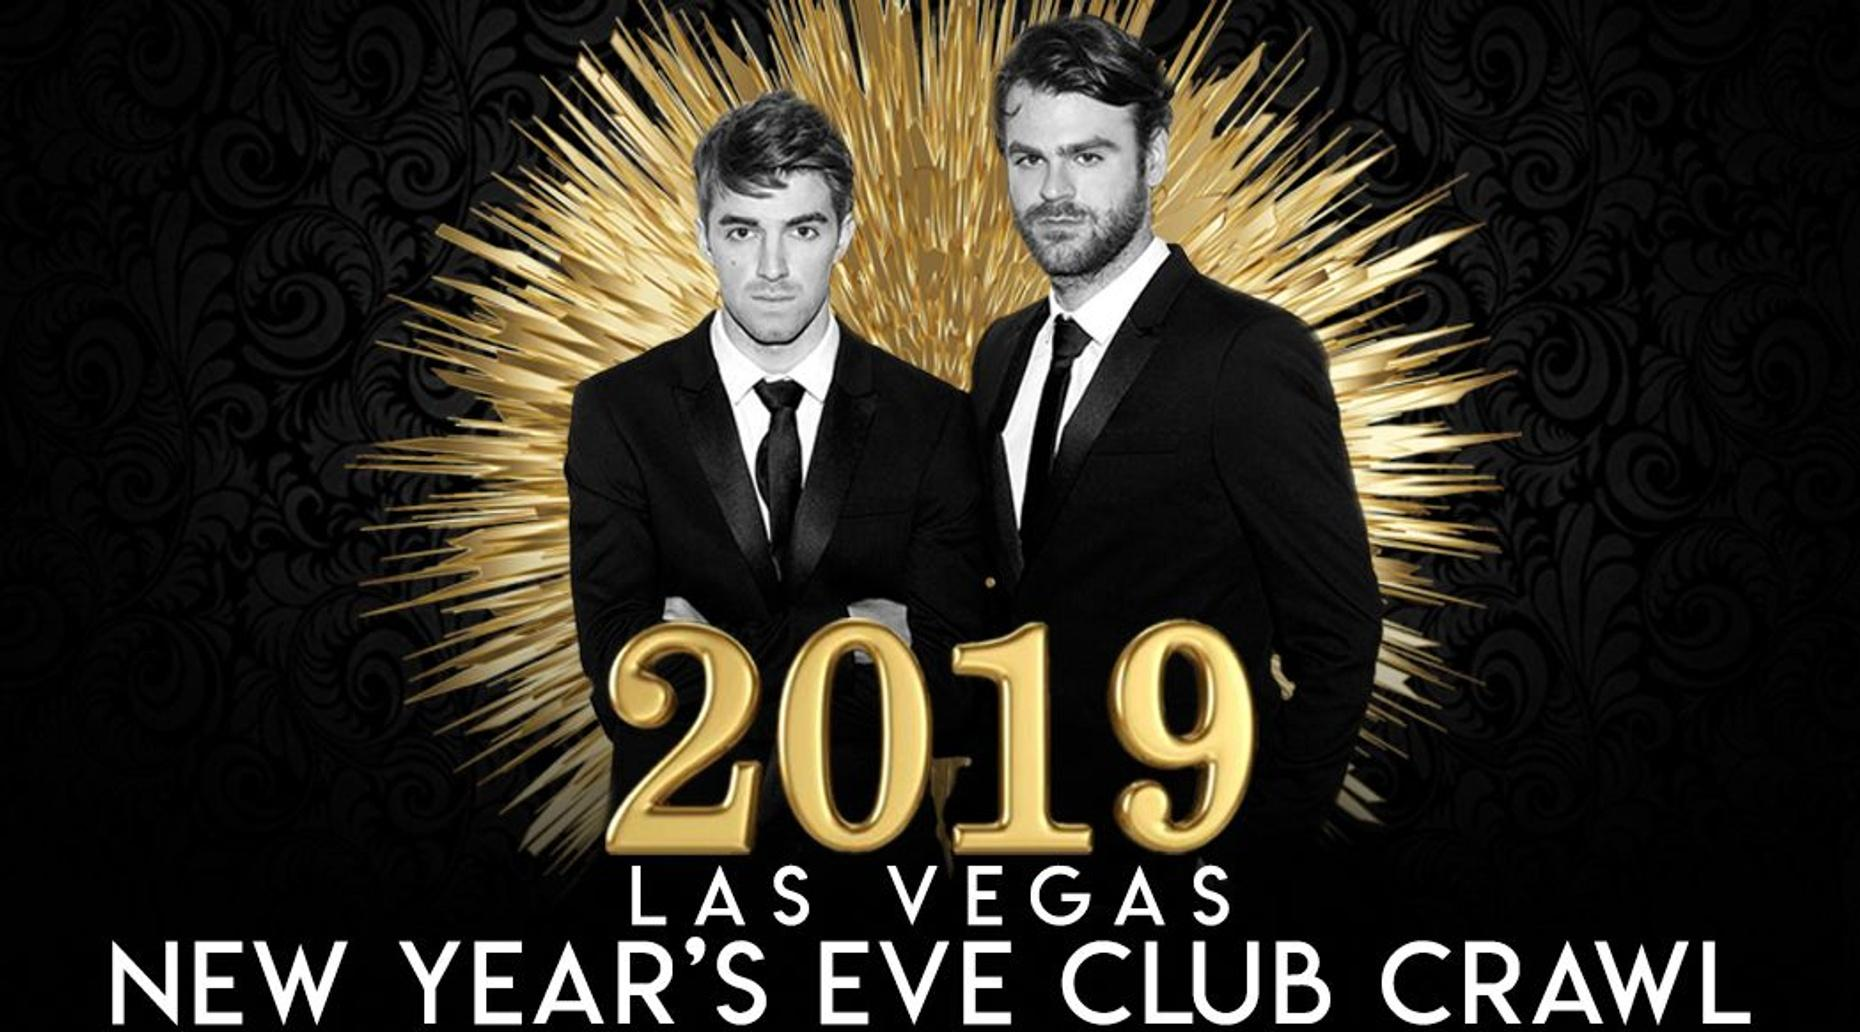 Vegas New Years Eve Club Crawl W/ The Chainsmokers